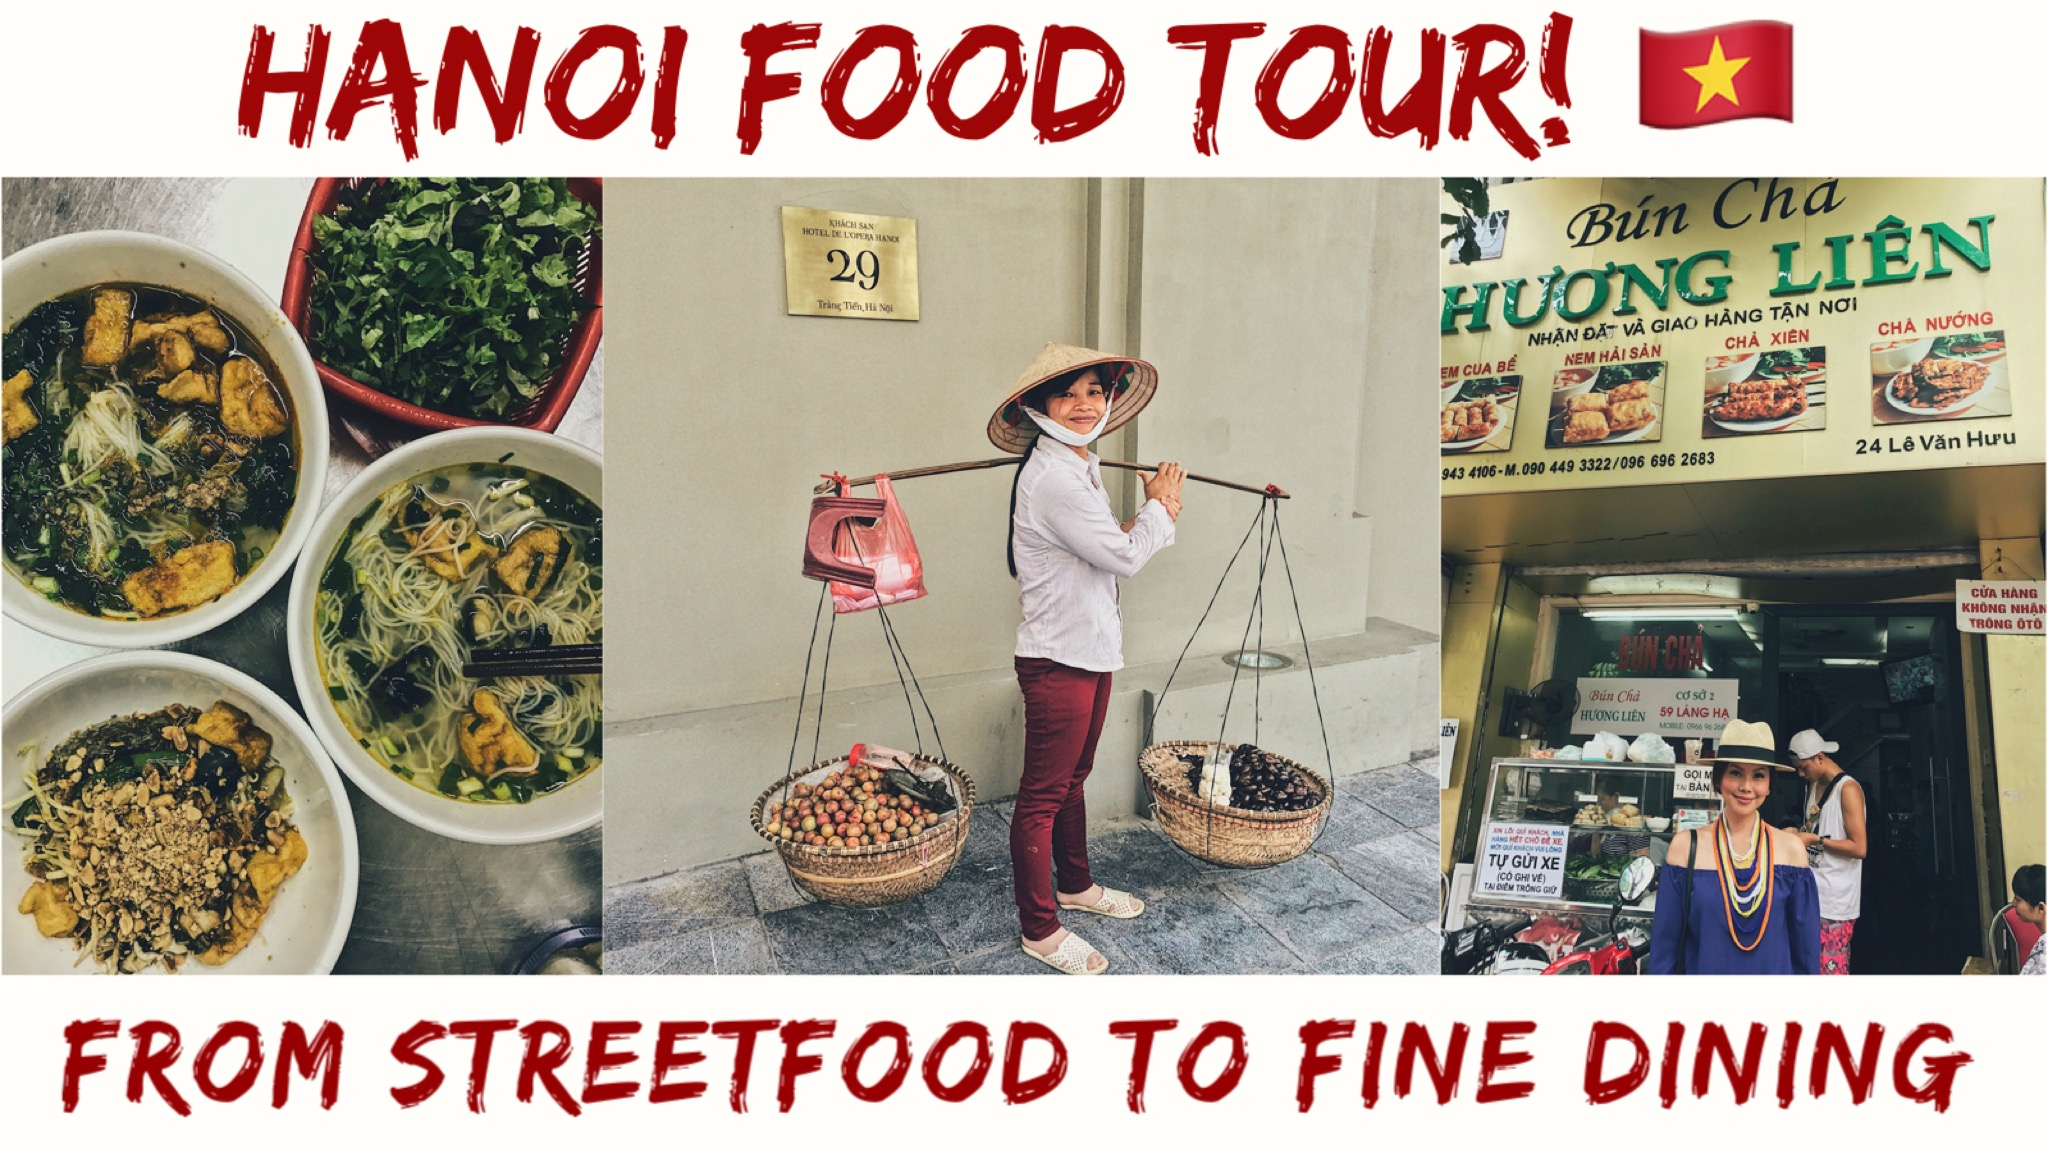 From Street Food to Fine Dining: Here Is Your Top 10 Hanoi Food Tour